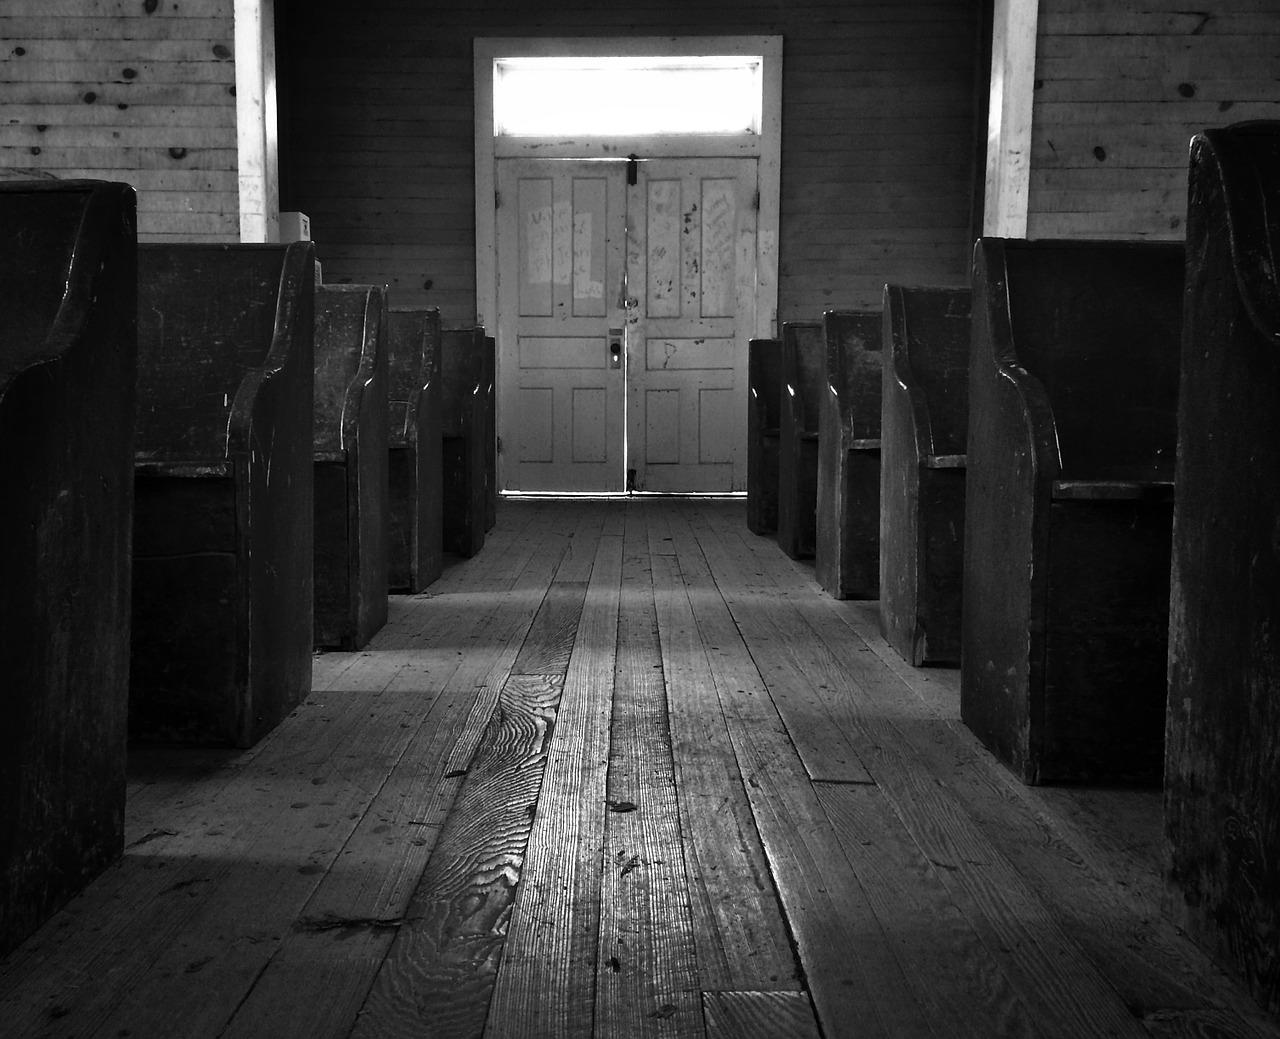 Church, Pews, Isle, Hardwood, Floors, Architecture